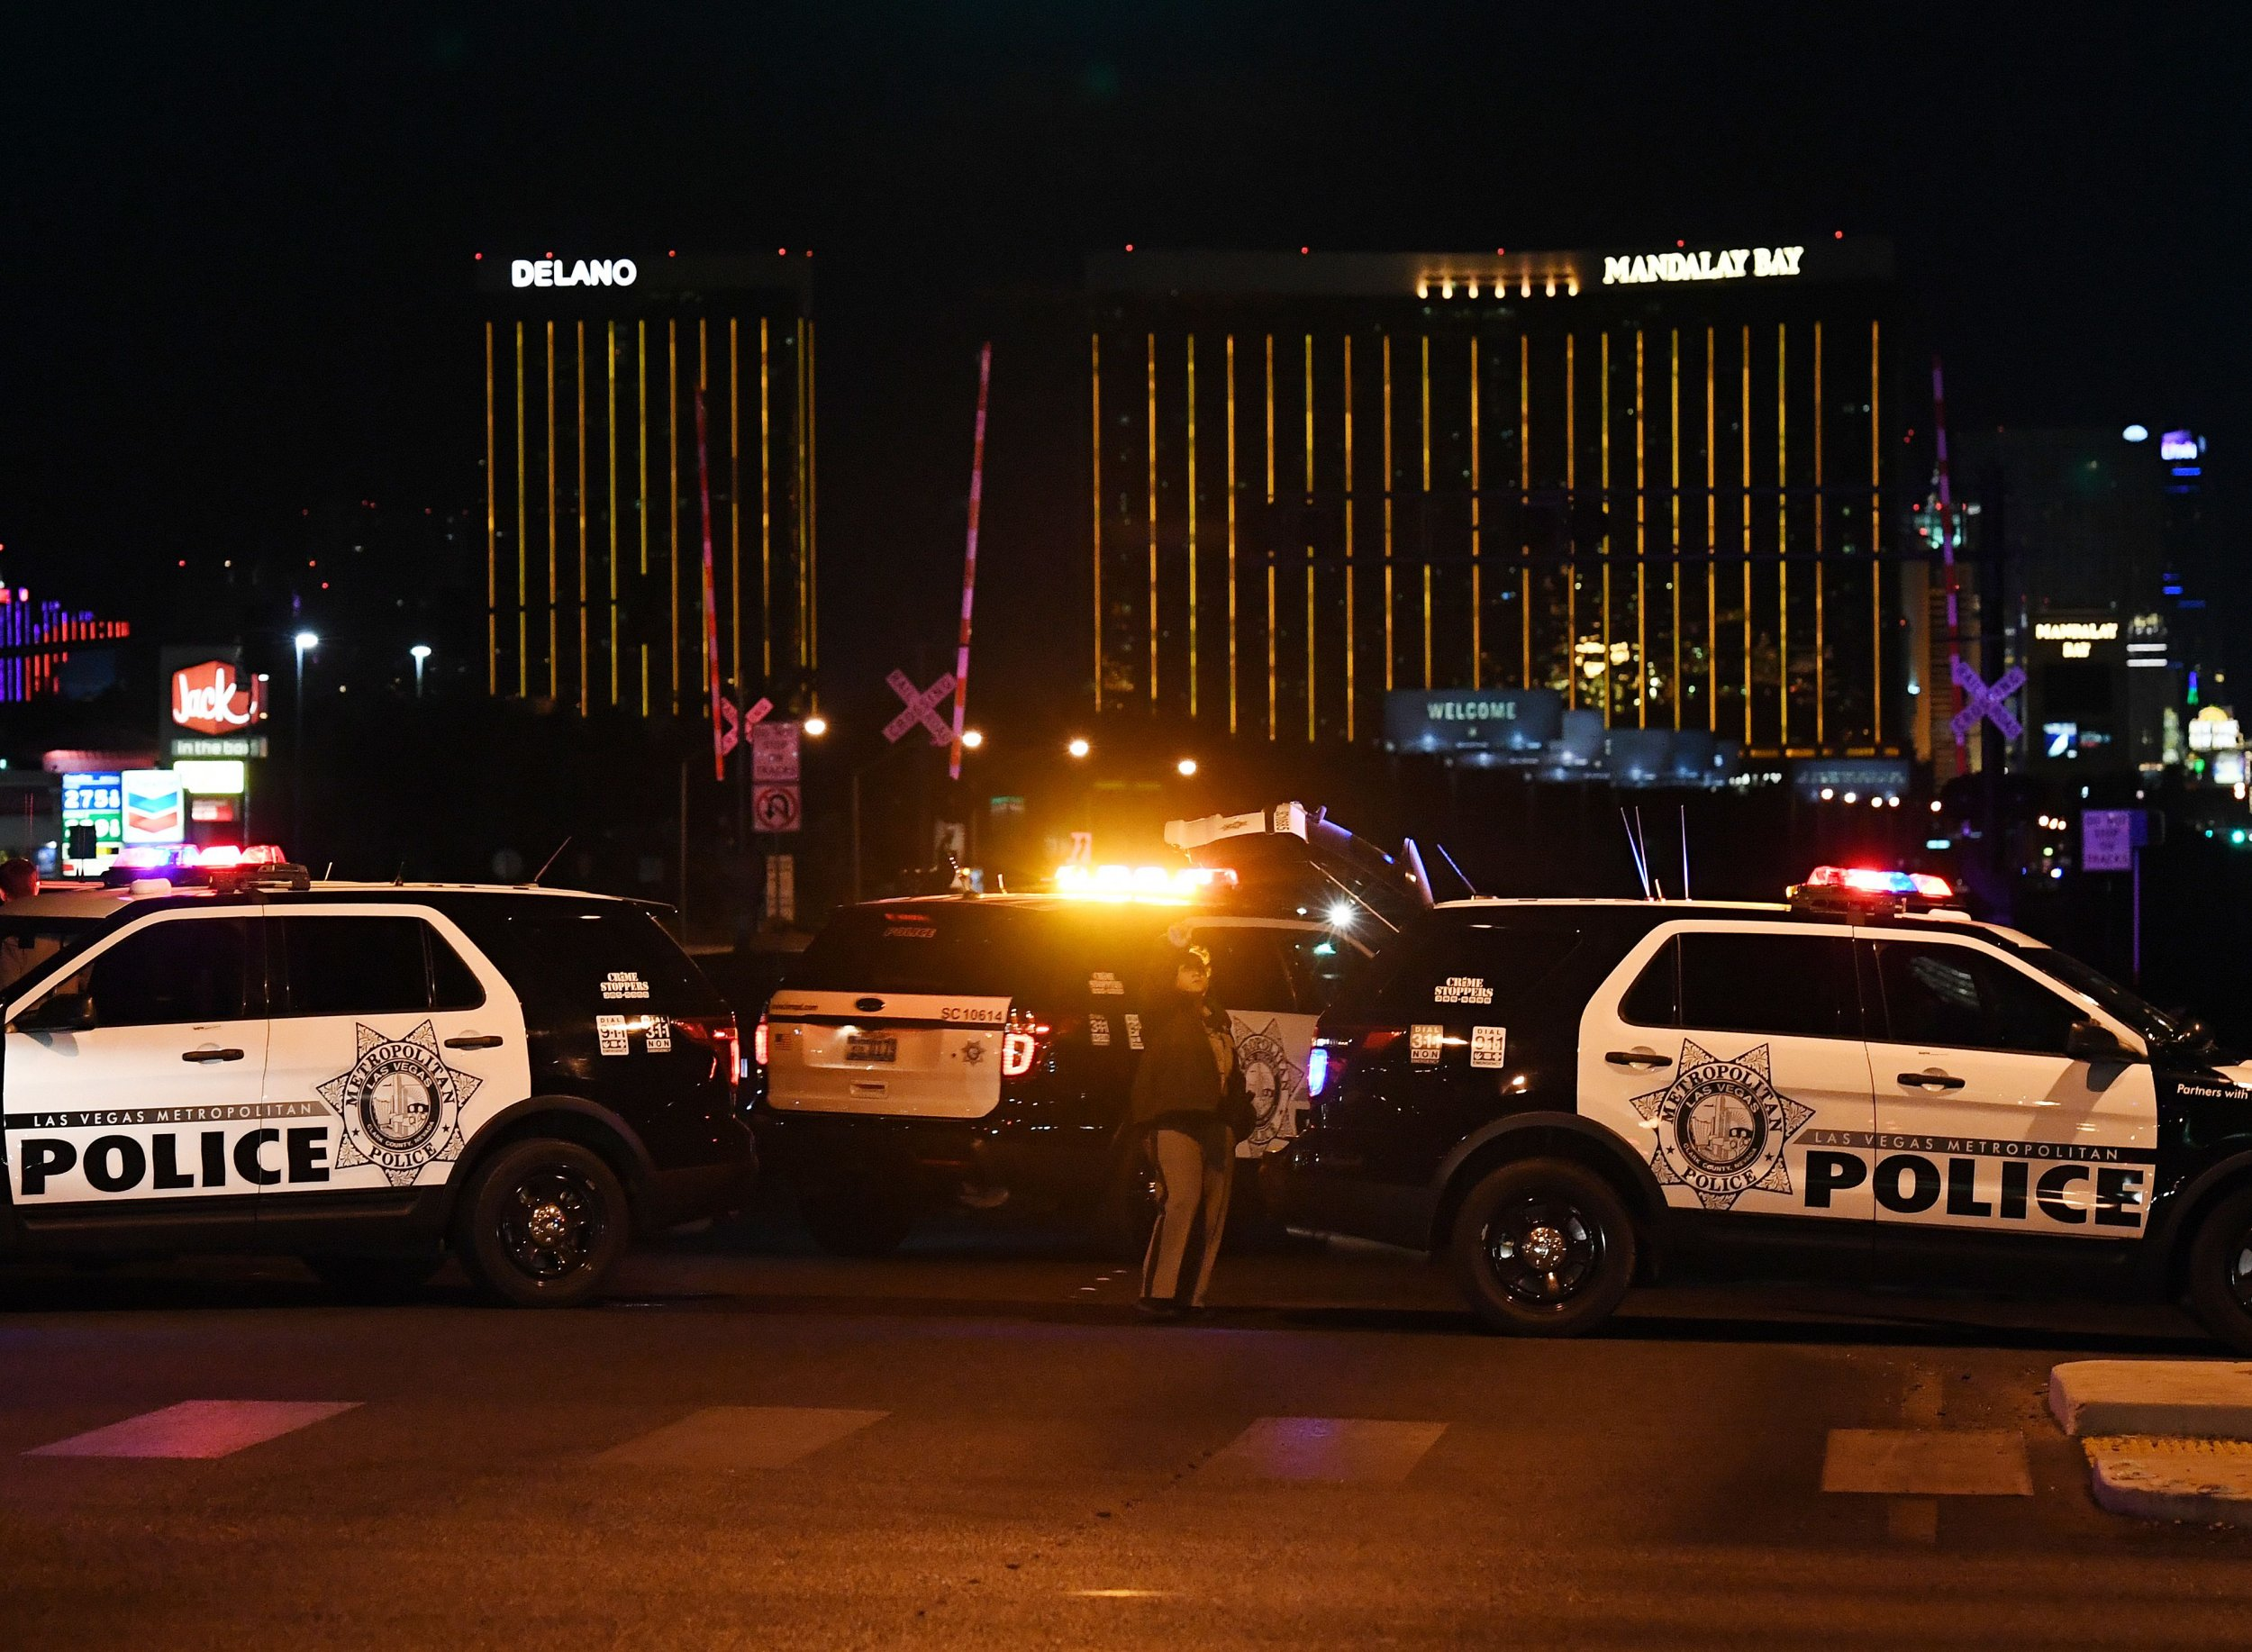 Trump Gun Laws Las Vegas shooting